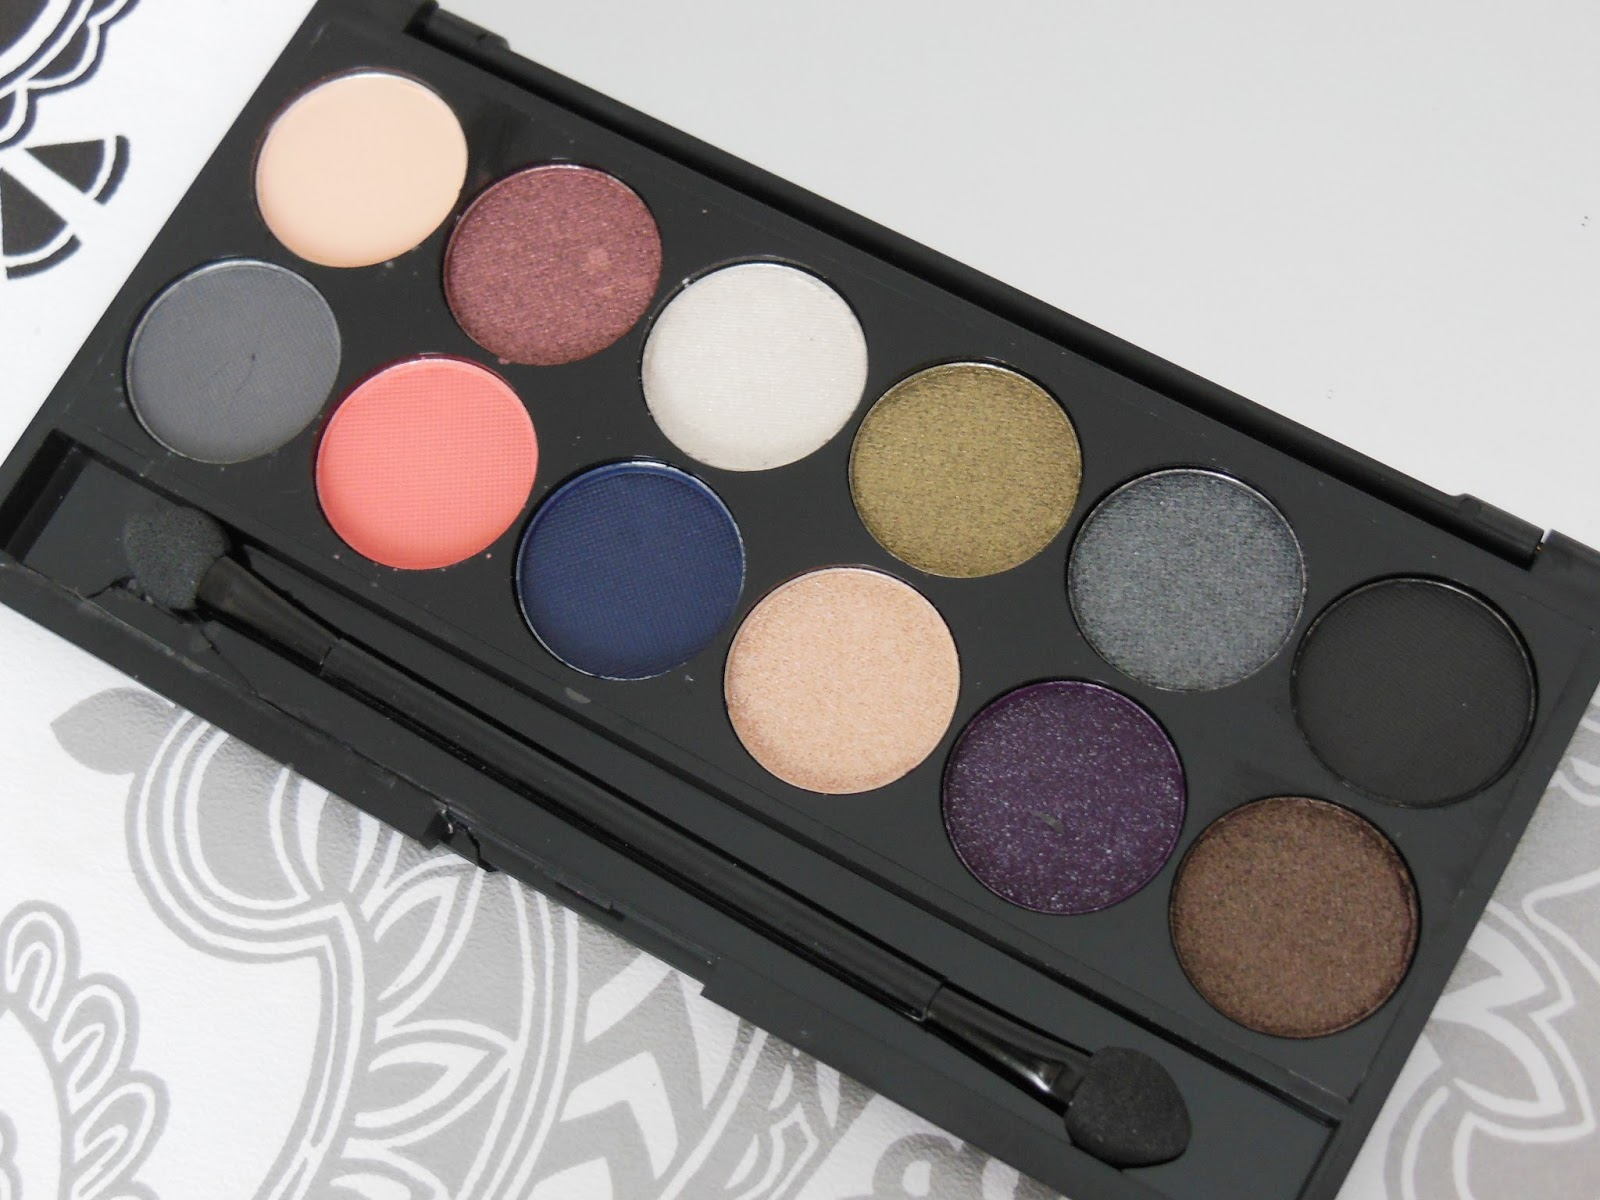 Sleek Showstoppers eye shadow palette